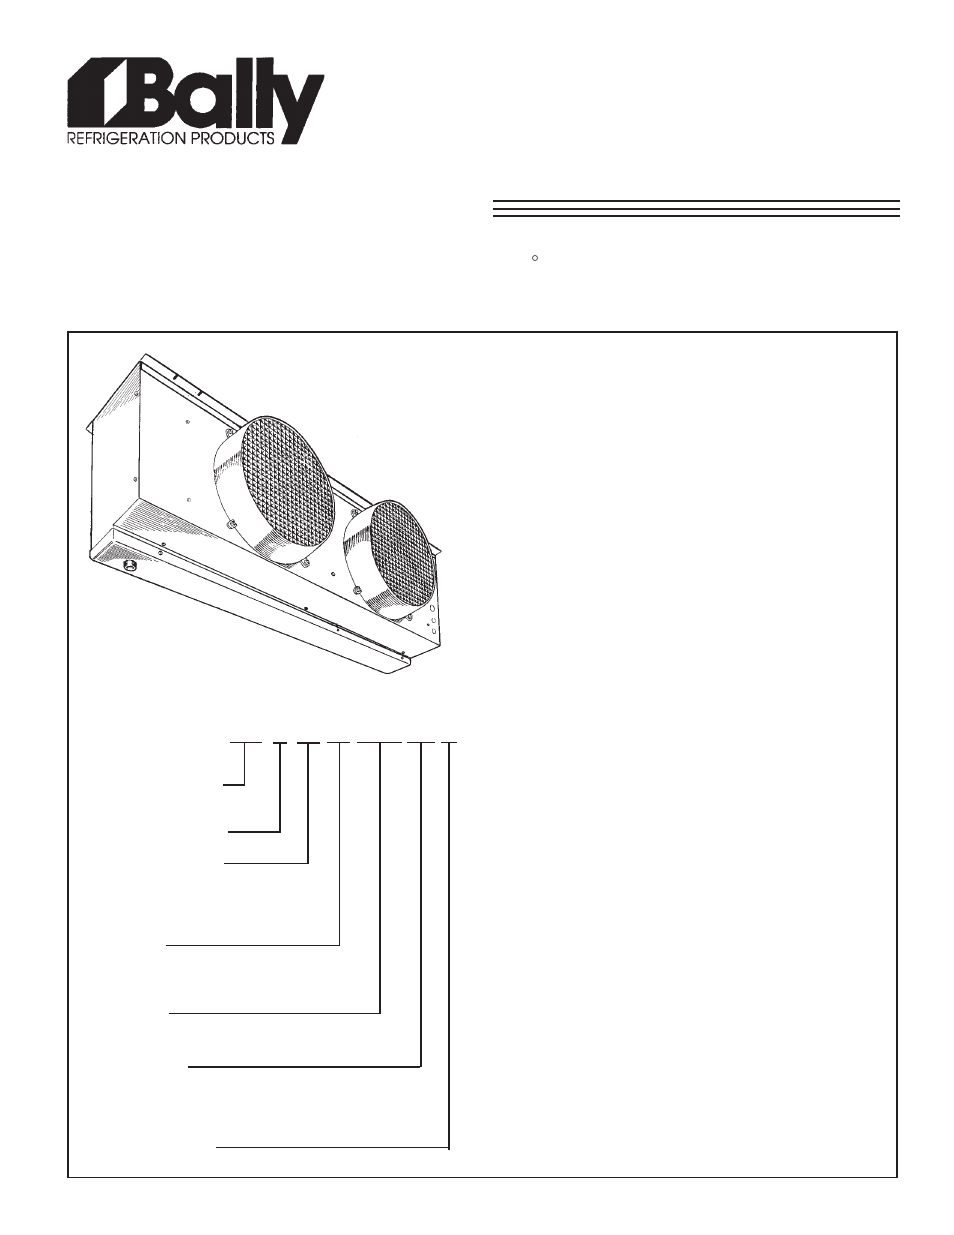 Bally Refrigeration Wiring Diagram on refrigeration piping diagrams, refrigeration system diagram, whirlpool schematic diagrams, refrigeration circuit diagram, refrigeration tools, refrigeration blueprints, refrigeration cycle diagram,